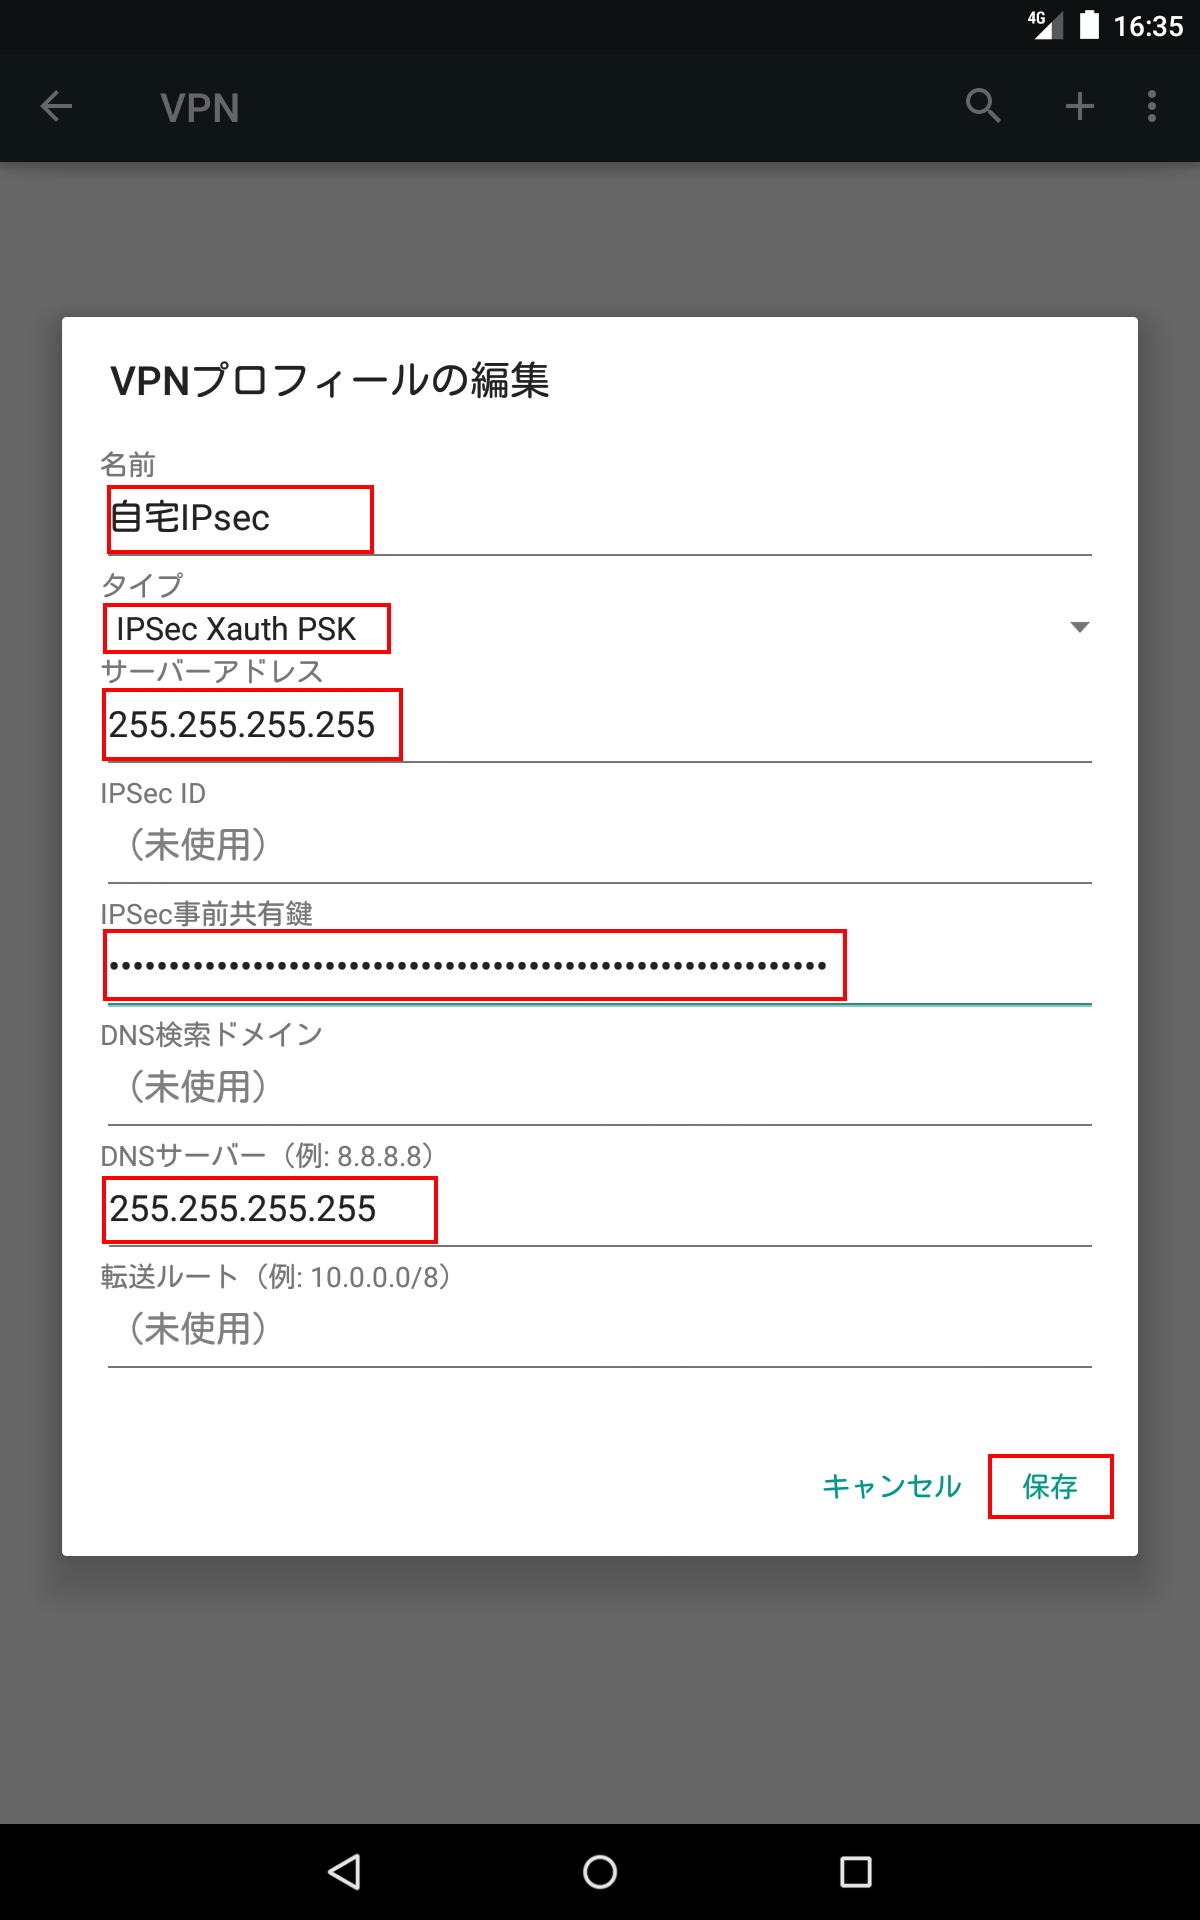 AndroidでIPSec Xauth PSK 4